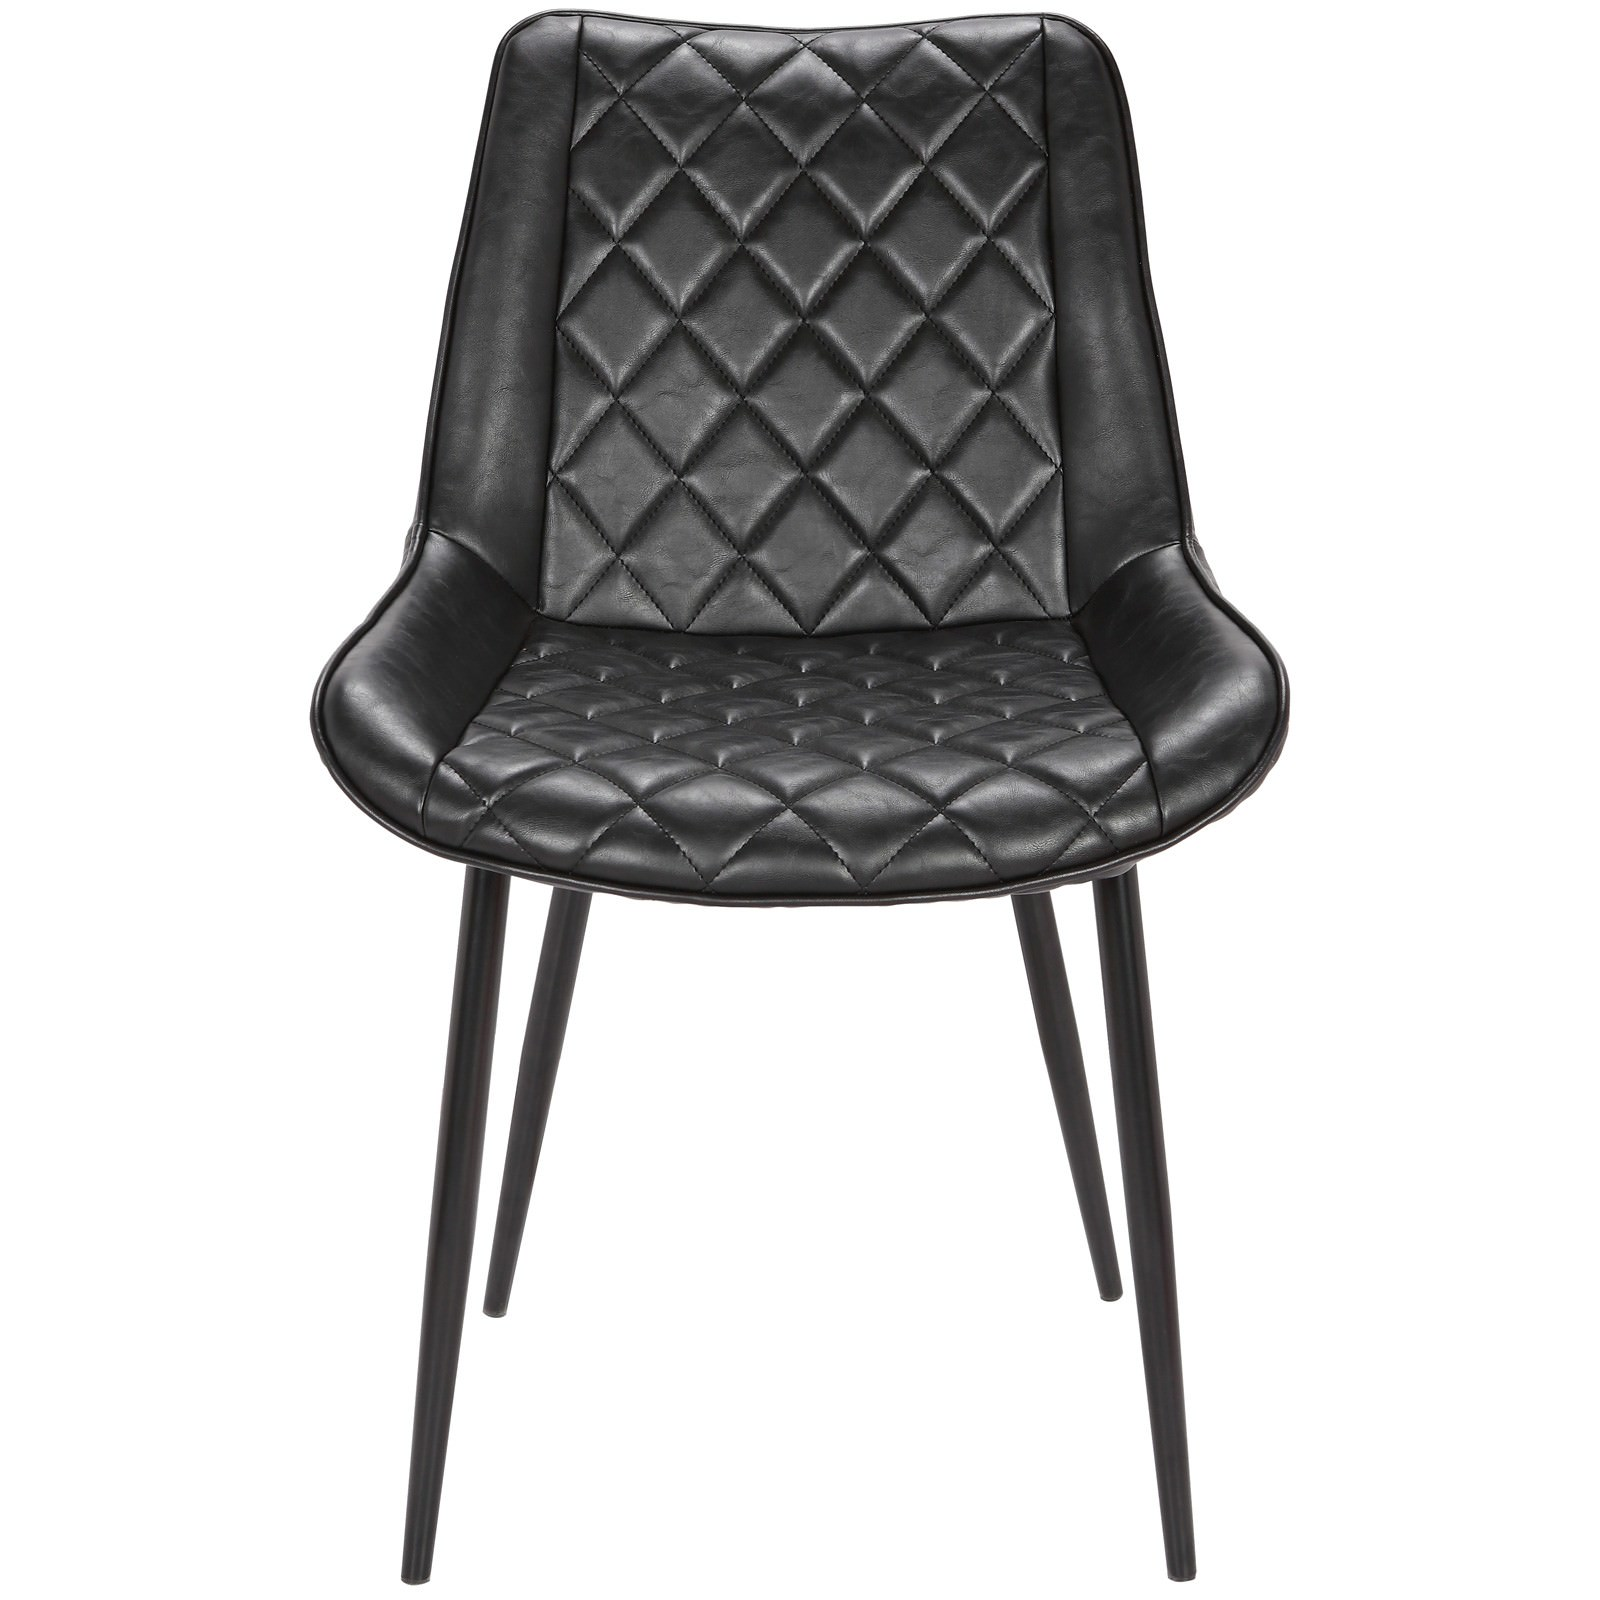 Lyon Commercial Grade Faux Leather Dining Chair, Black